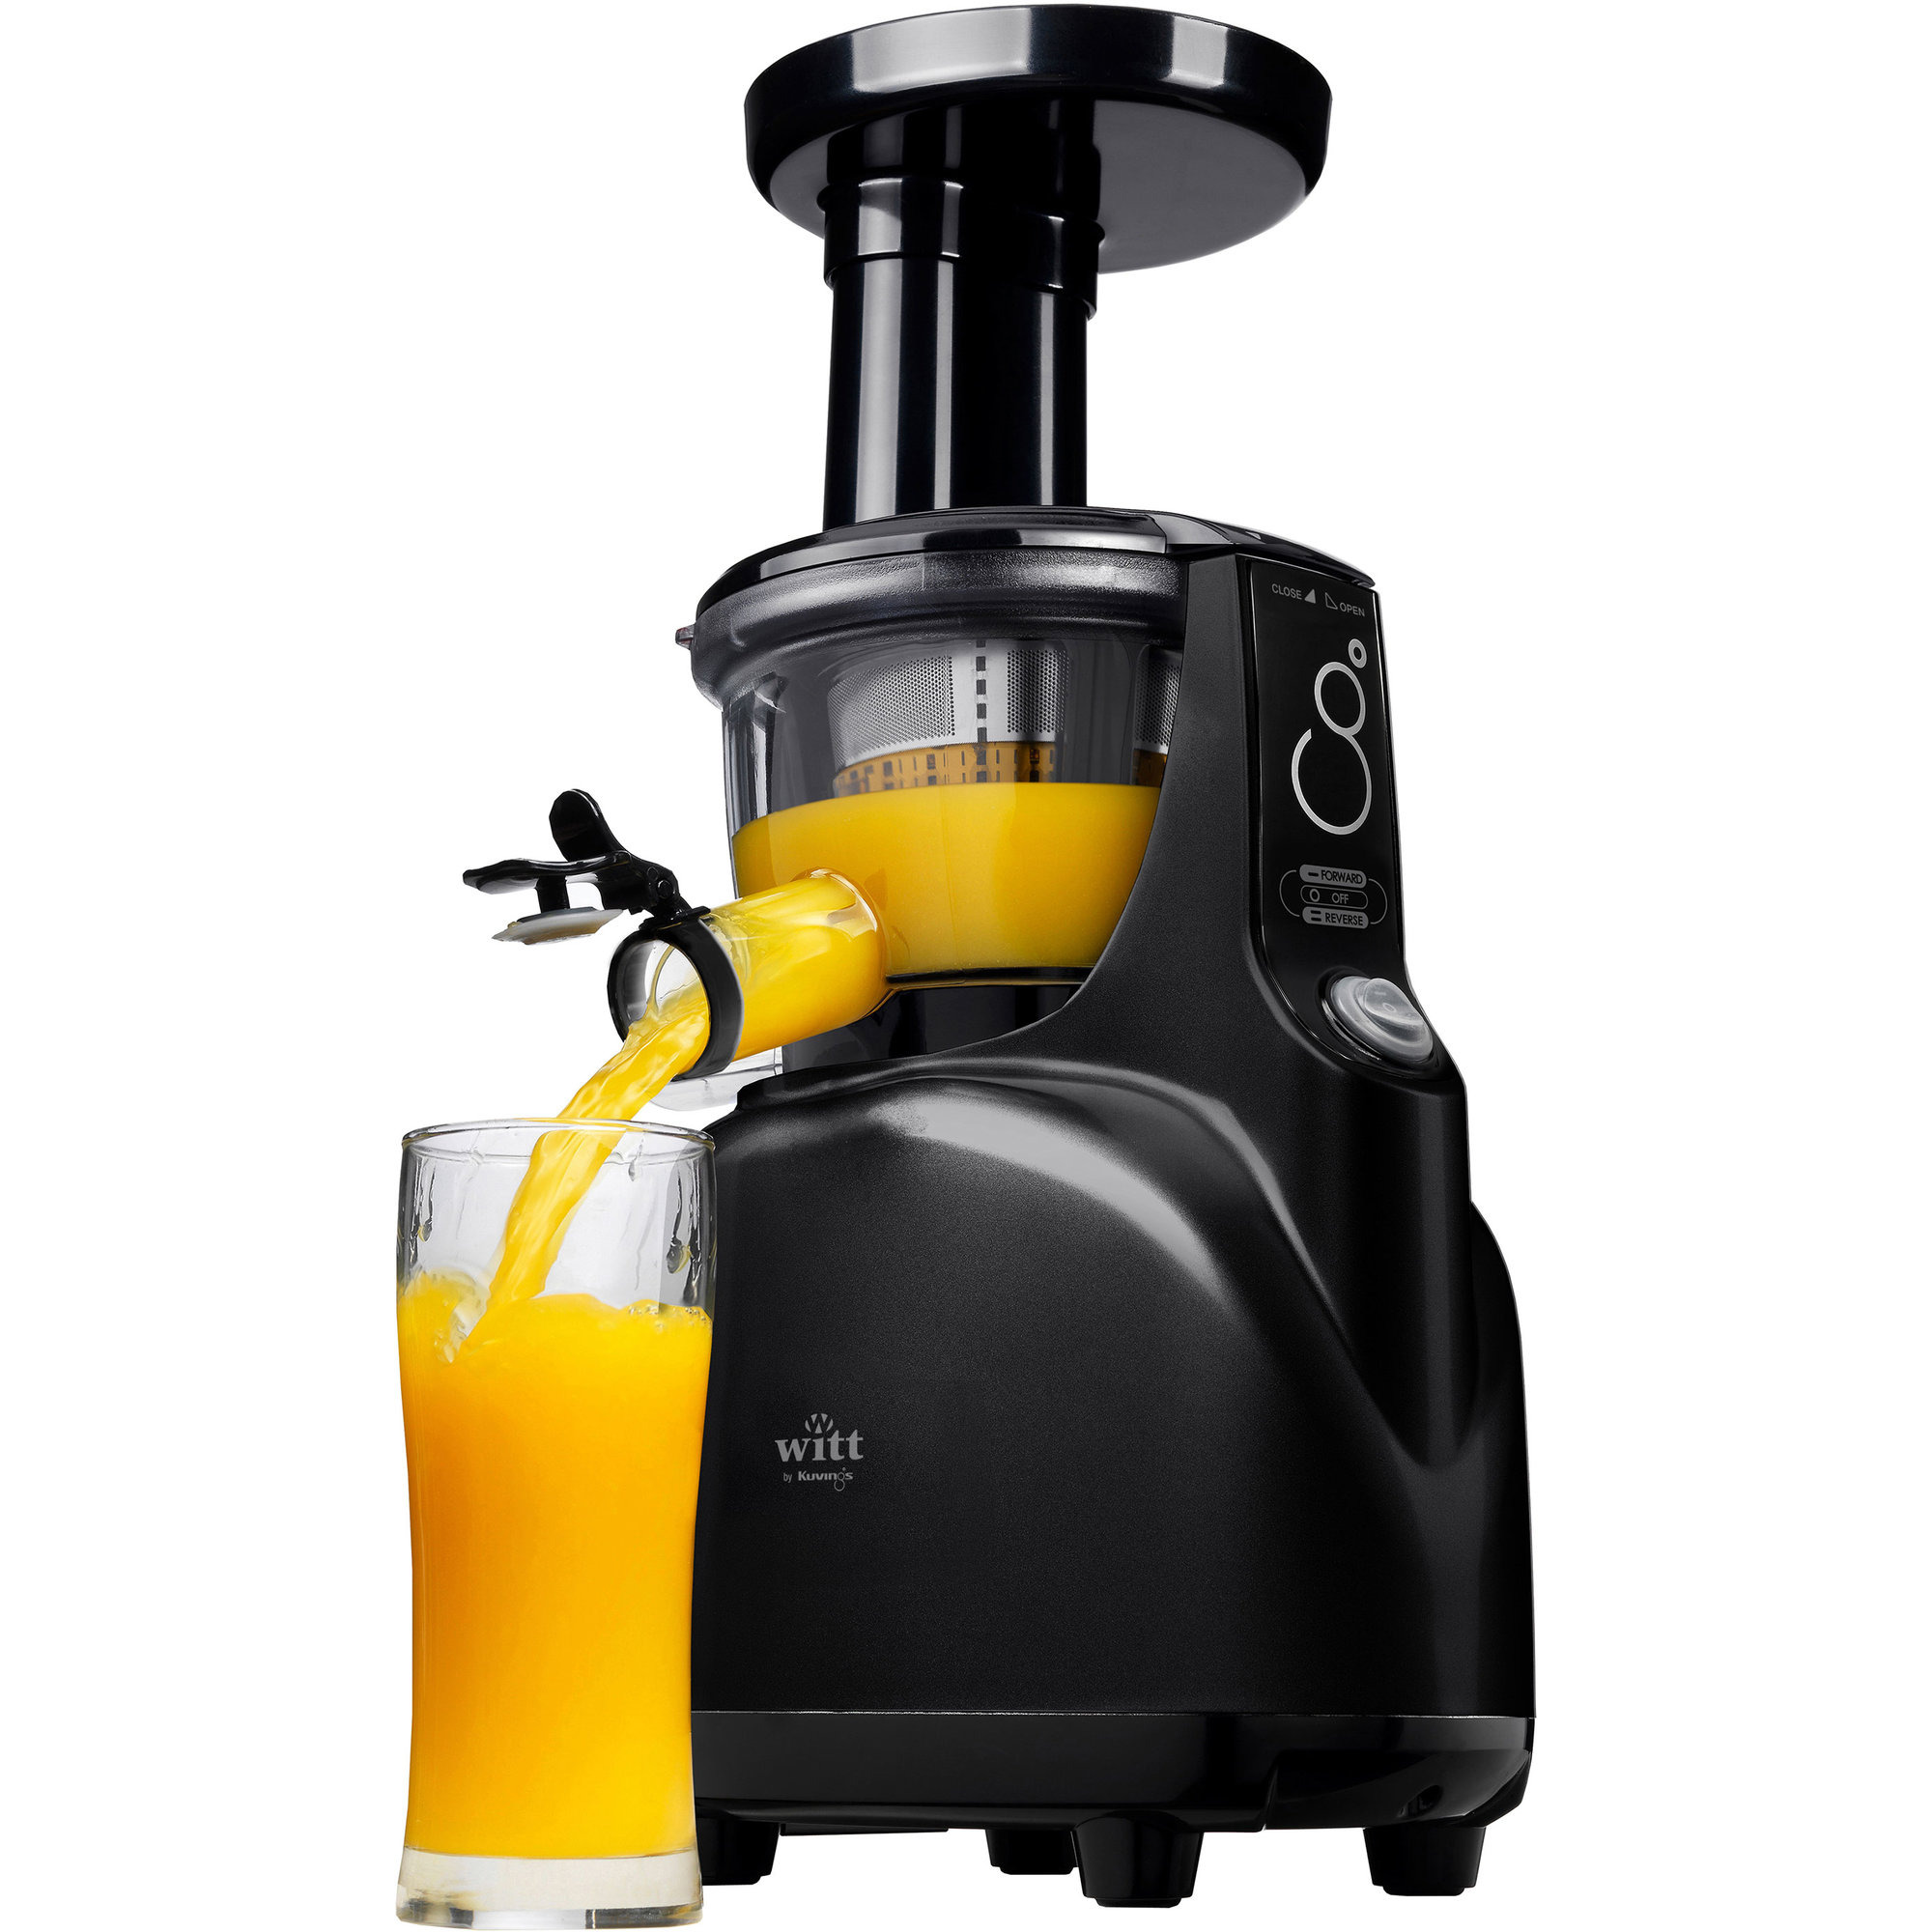 B5100 Silent Slow Juicer fra Witt by Kuvings Gratis Levering